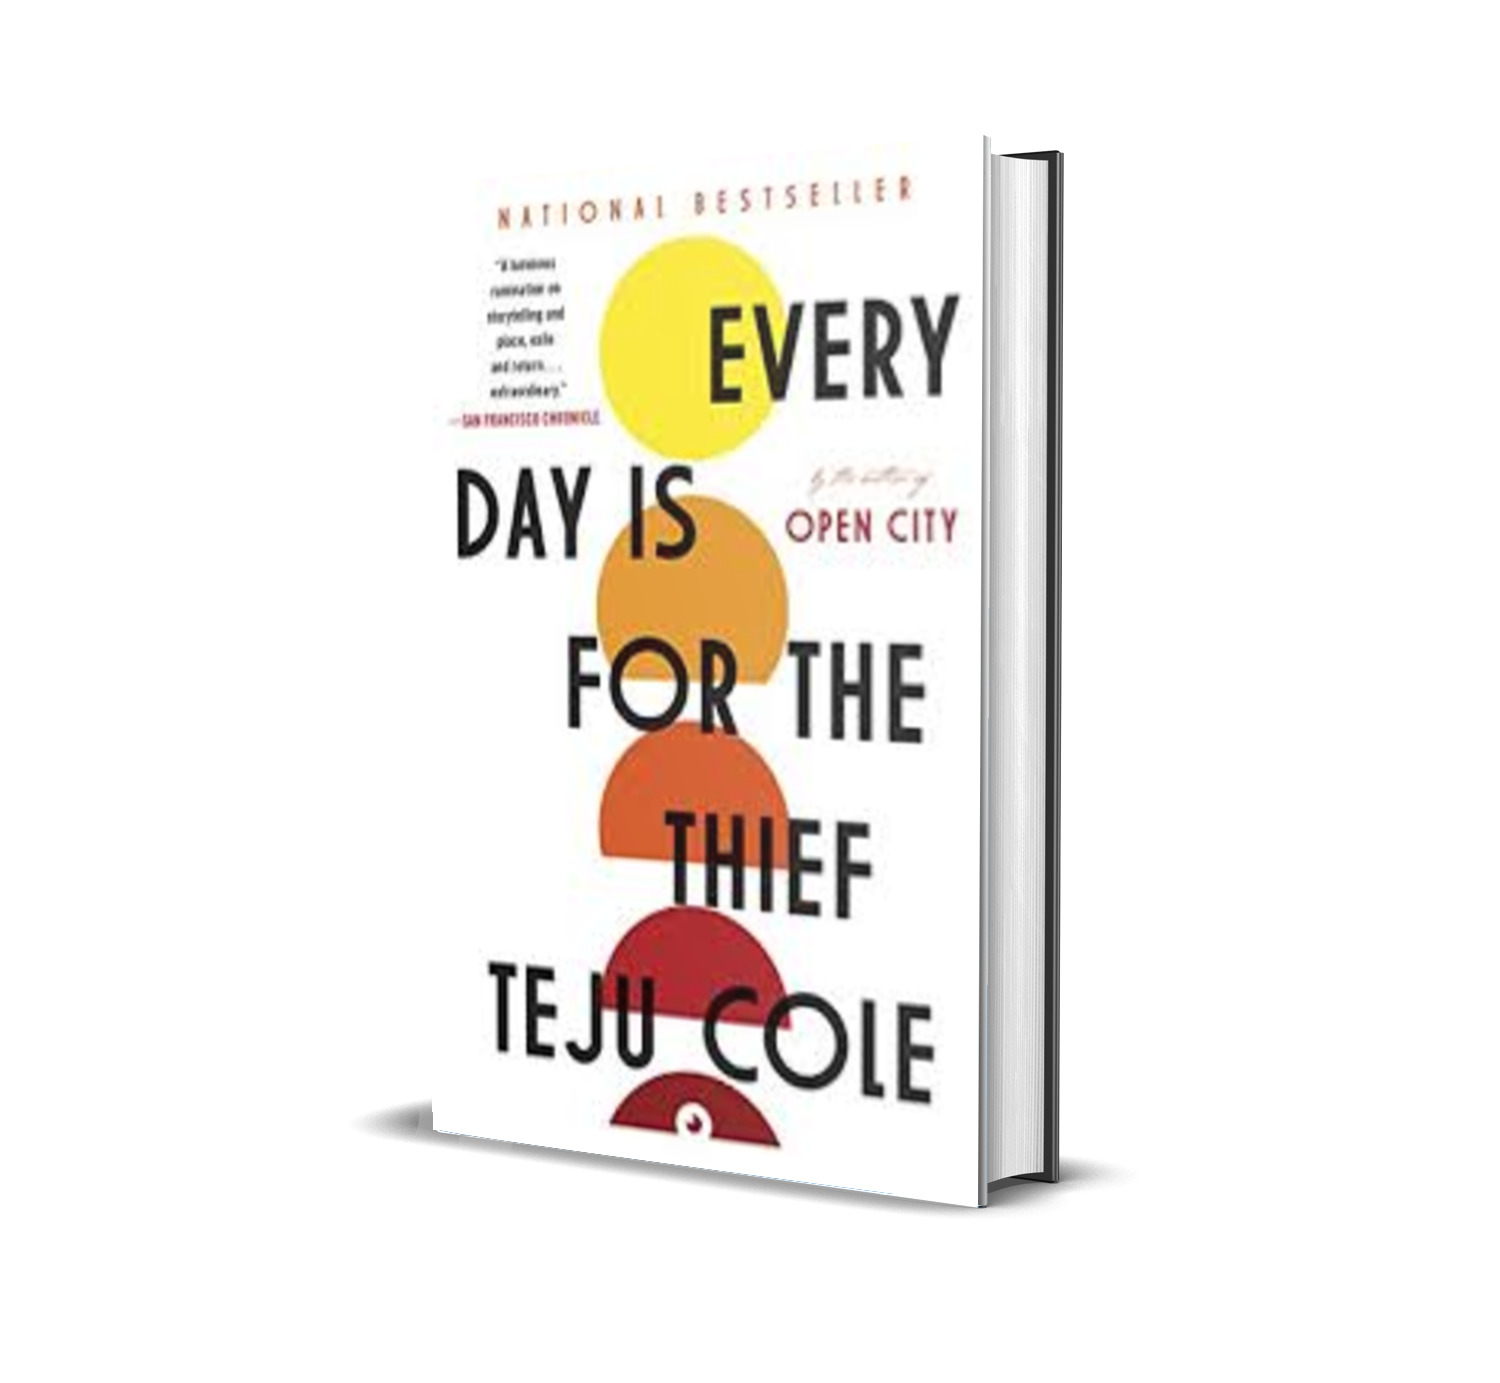 Everyday is for the thief- teju cole